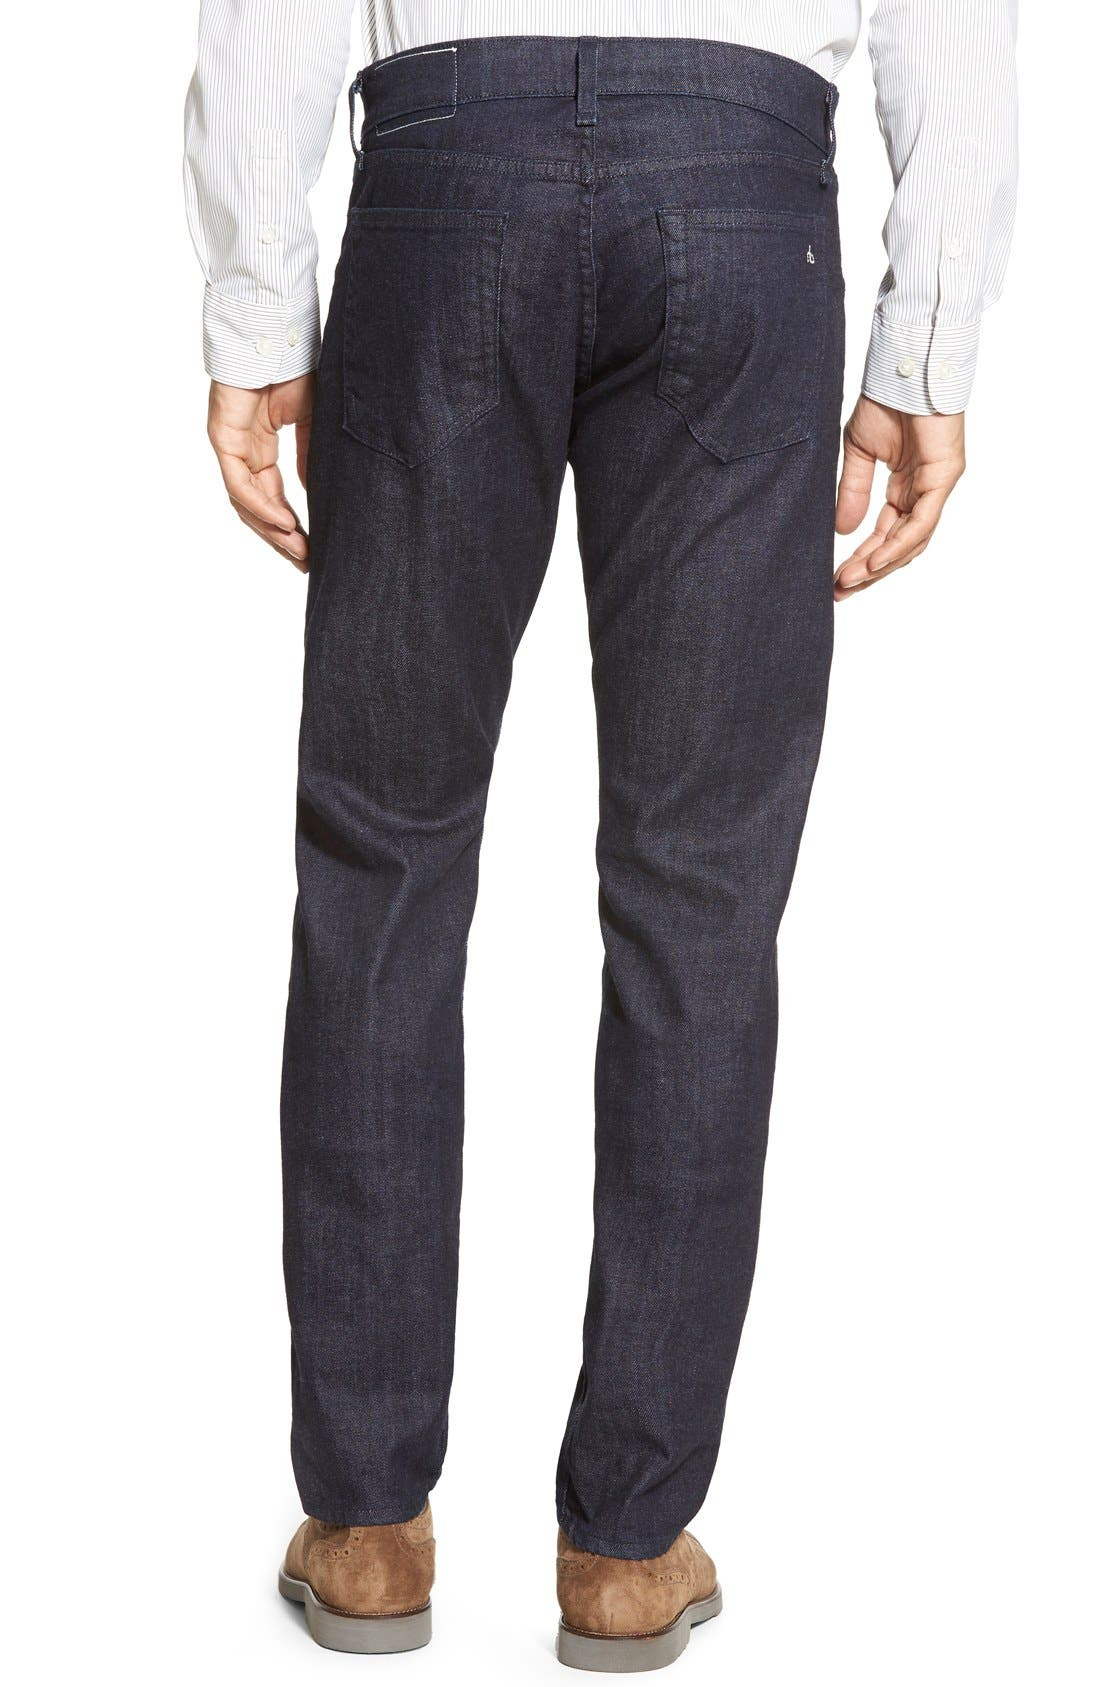 Alternate Image 2  - rag & bone Standard Issue Fit 2 Slim Fit Jeans (Tonal Rinse)